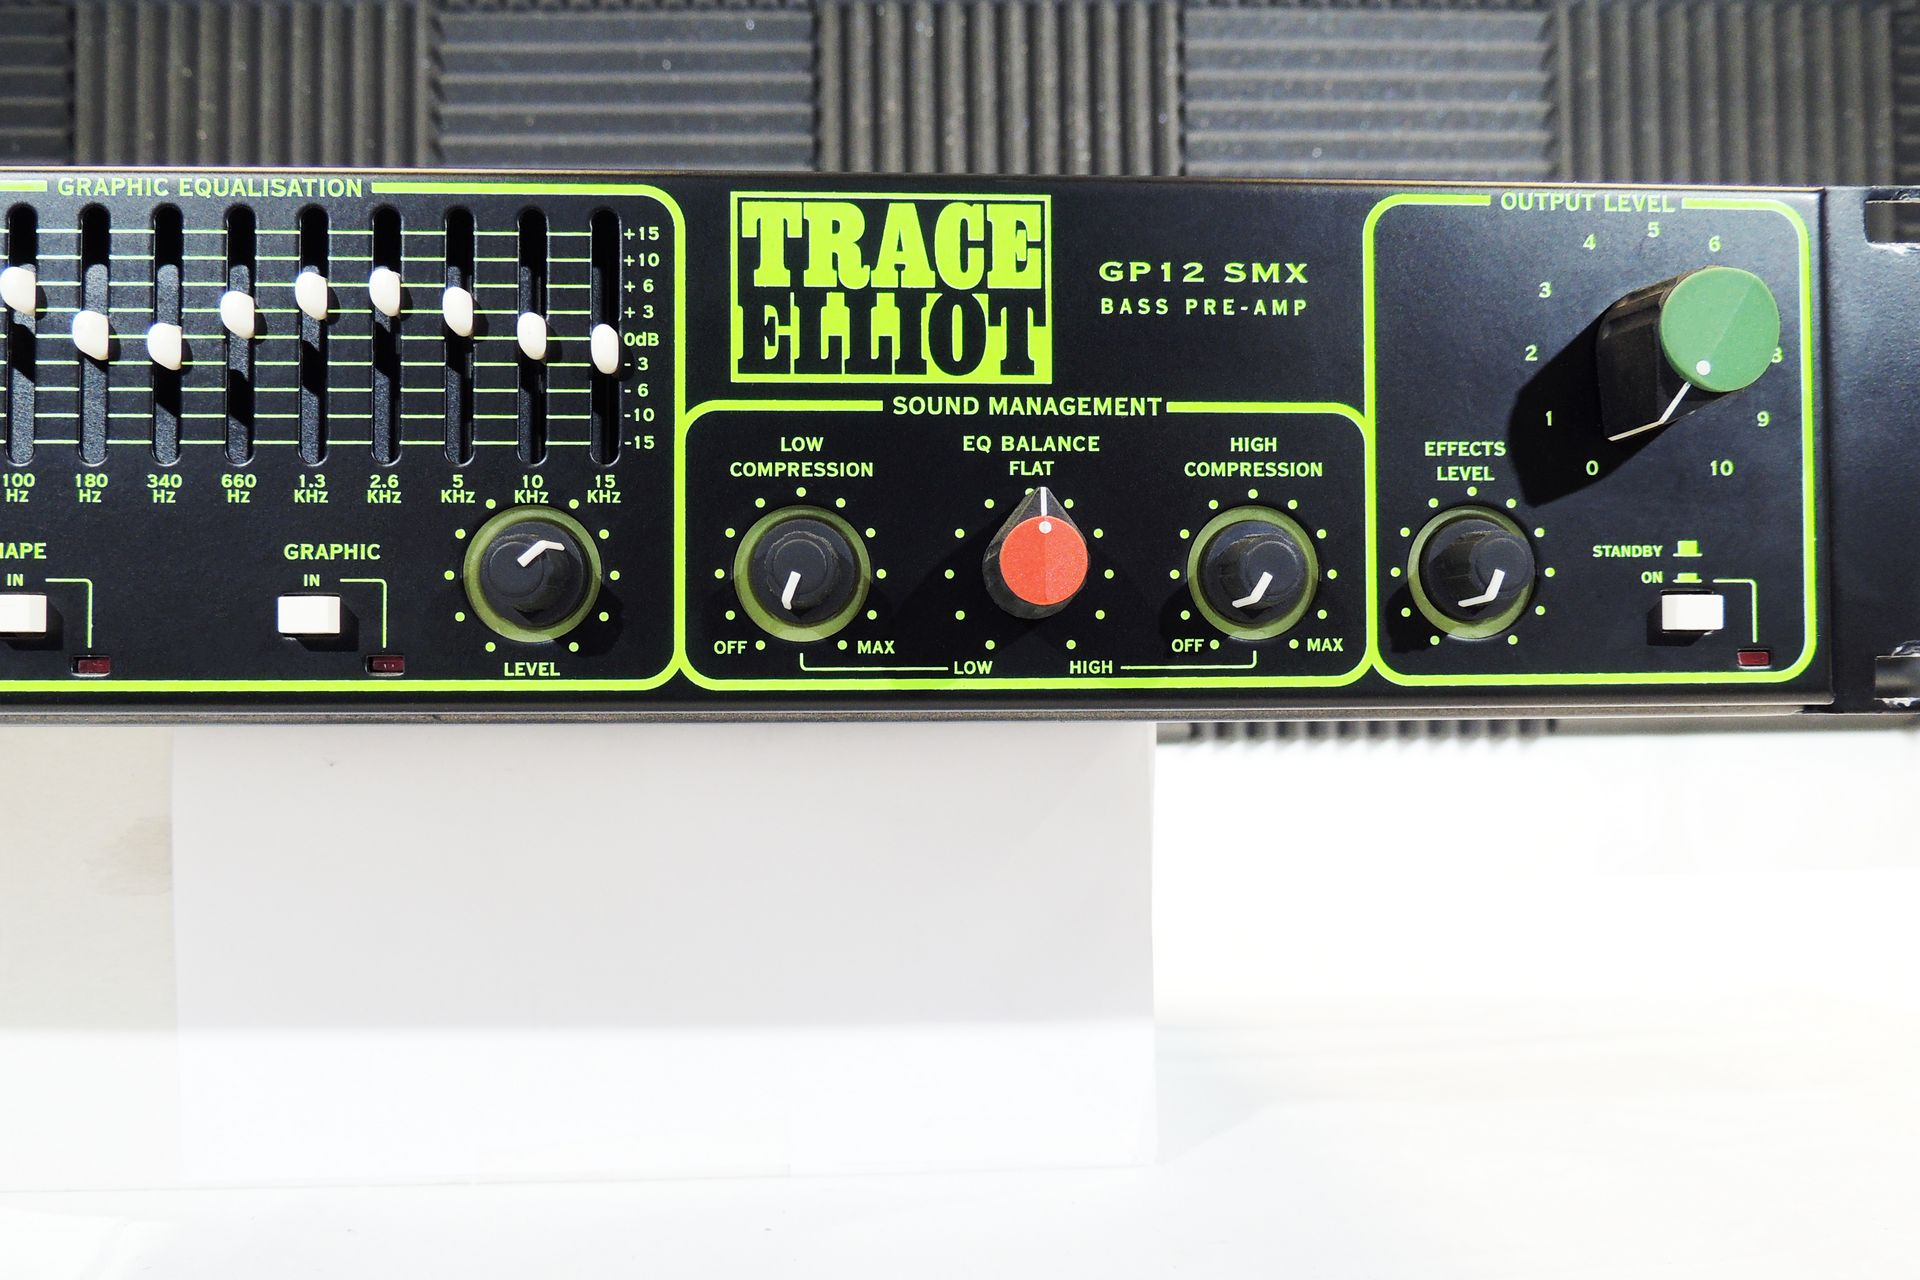 Trace Elliot GP12 SMX eighties bass amp for sale at Plasma Music